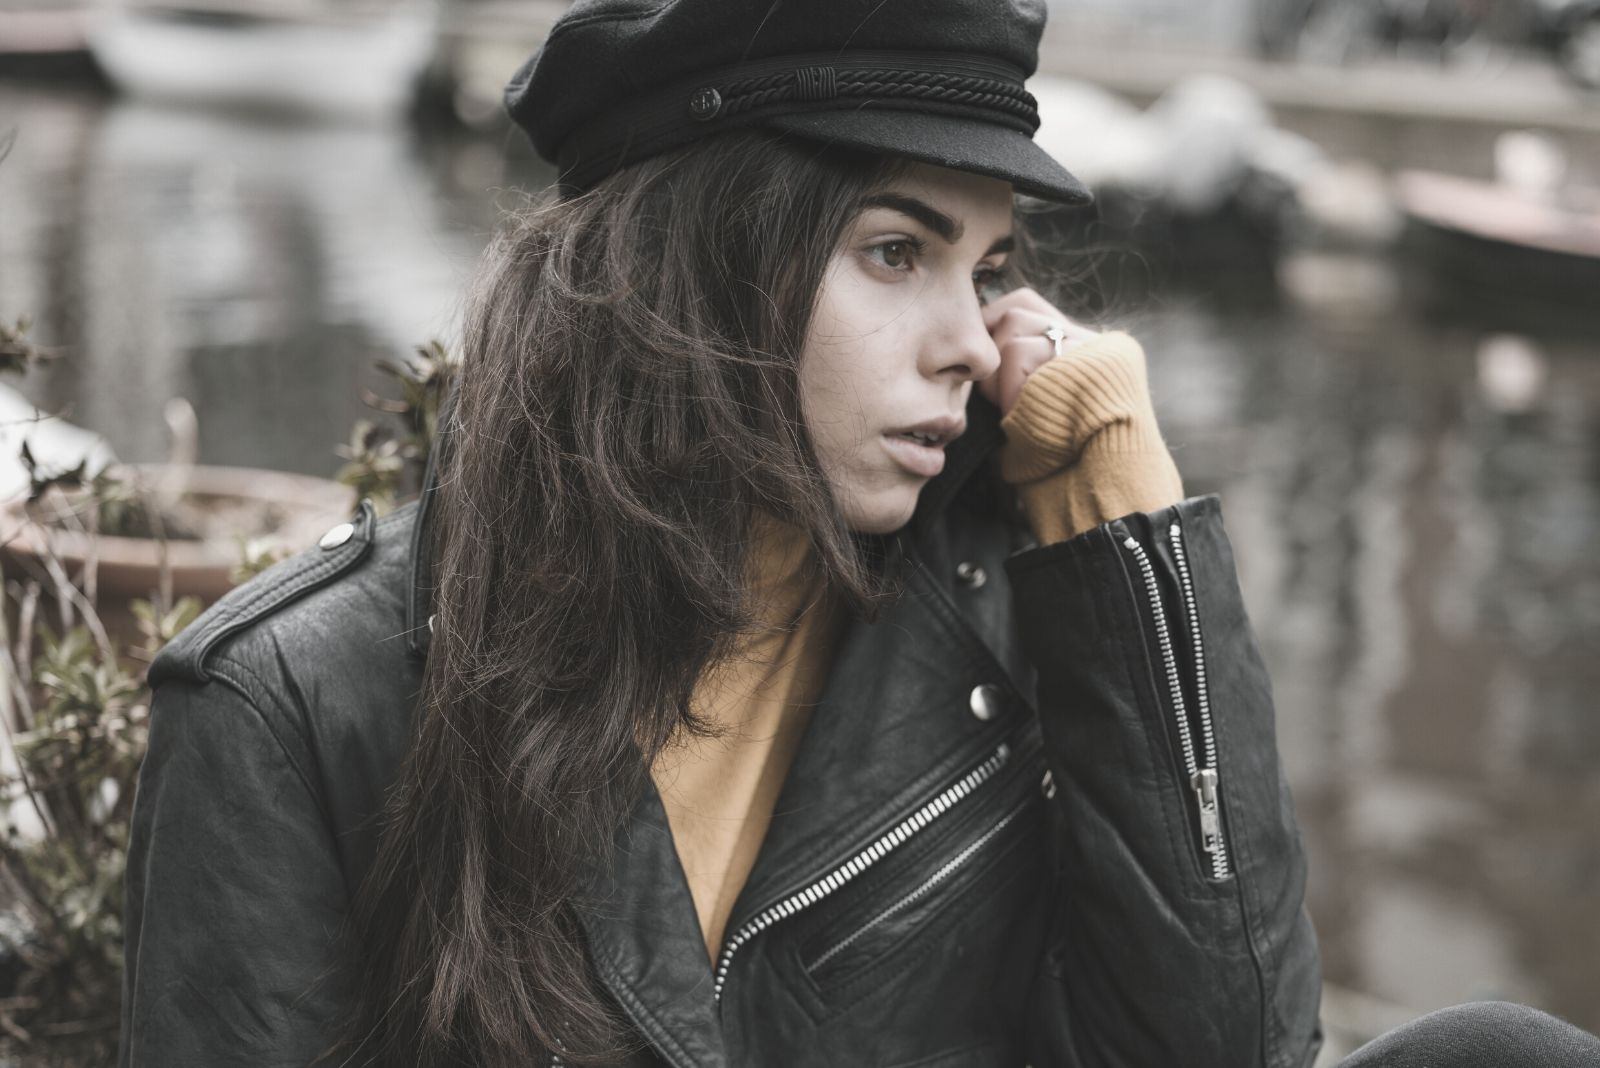 stylish pensive woman resting on a sidewalk near a canal in autumn city